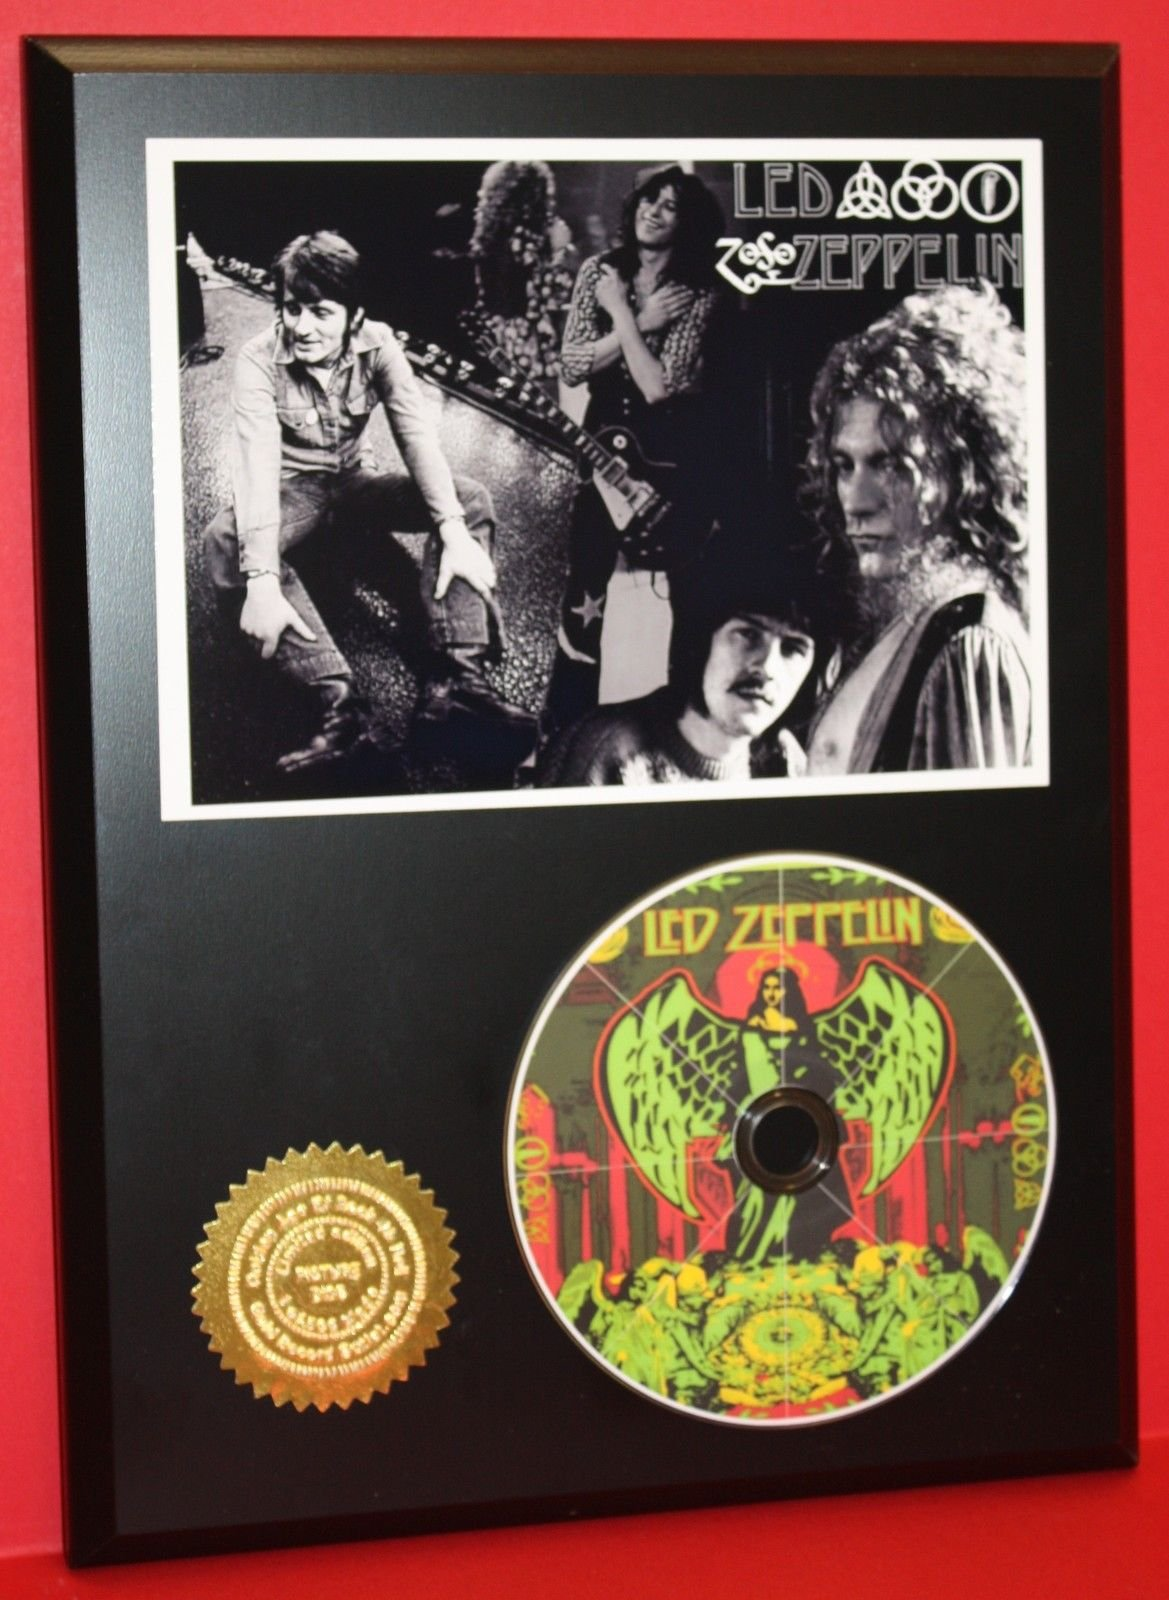 LED ZEPPELIN LIMITED EDITION PICTURE CD DISC COLLECTIBLE RARE GIFT WALL ART